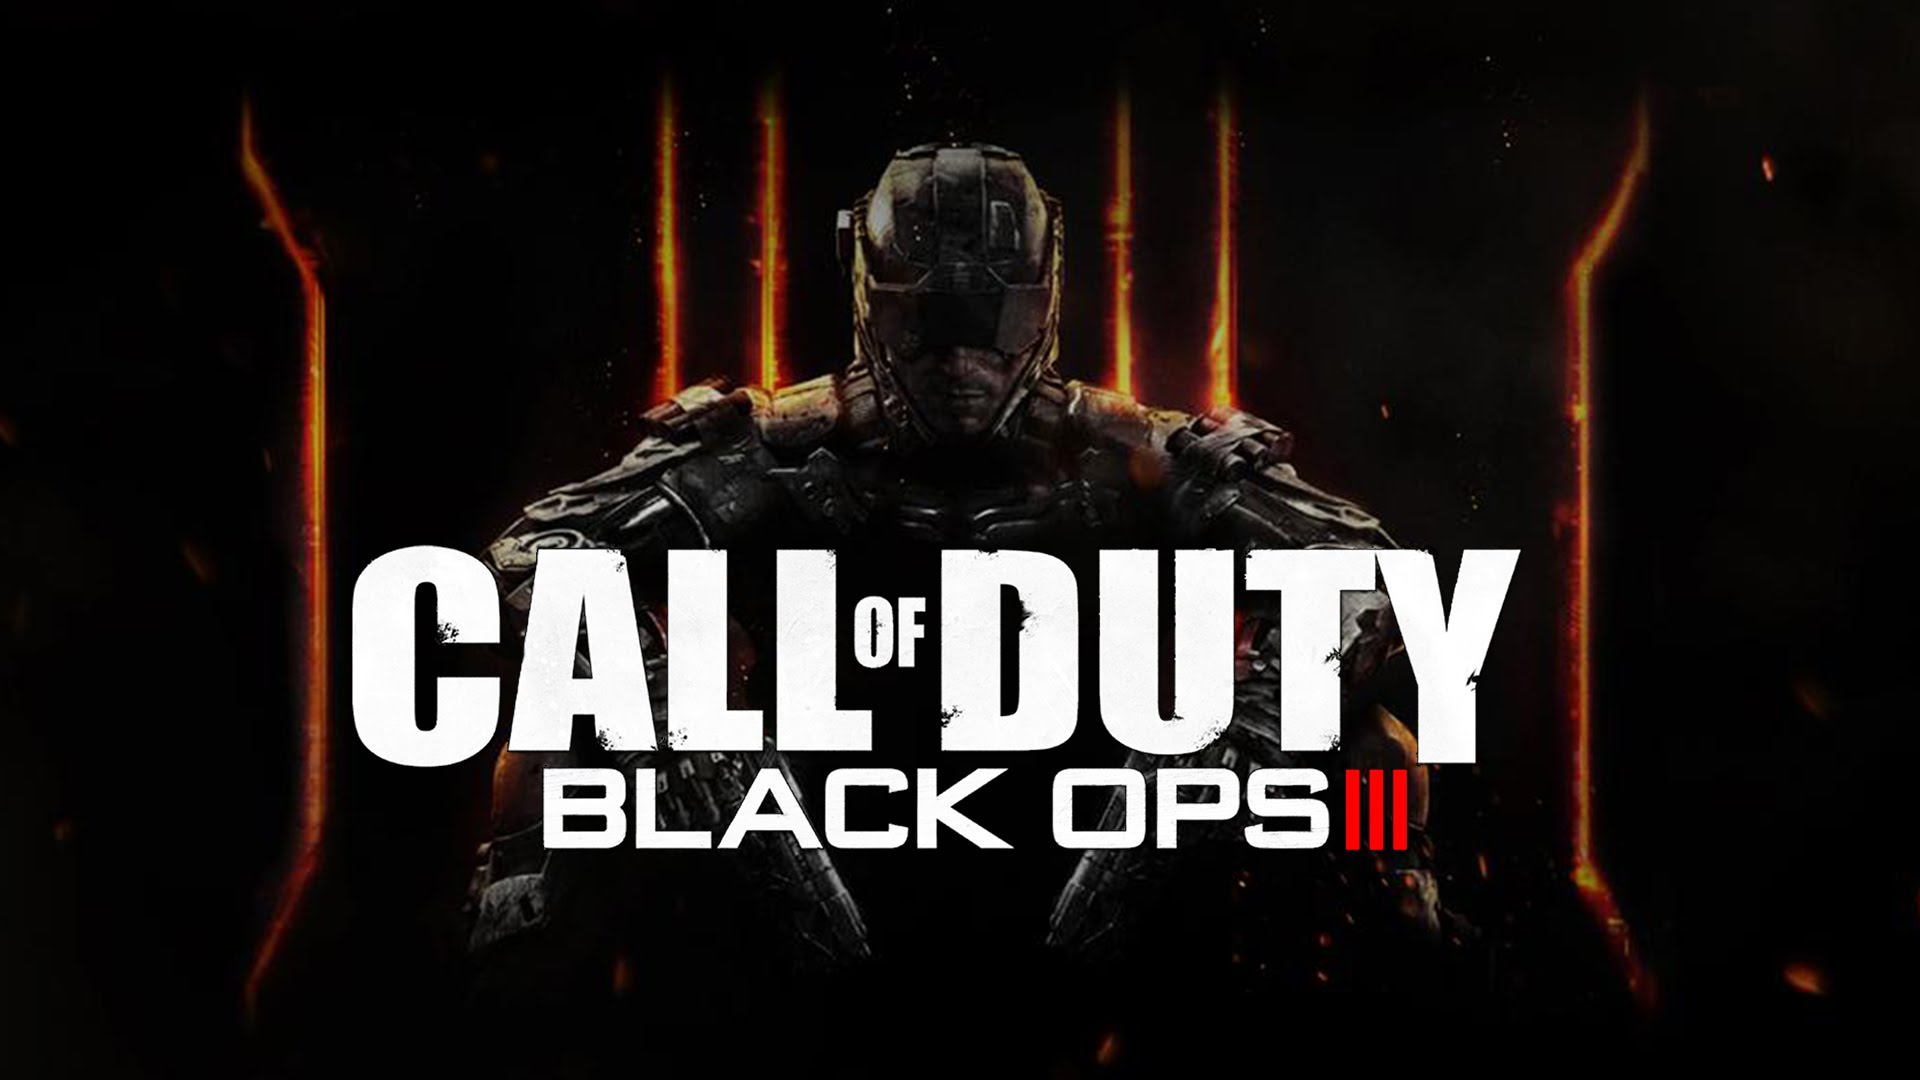 Black Ops 3 Story Teased In New Call Of Duty Timeline